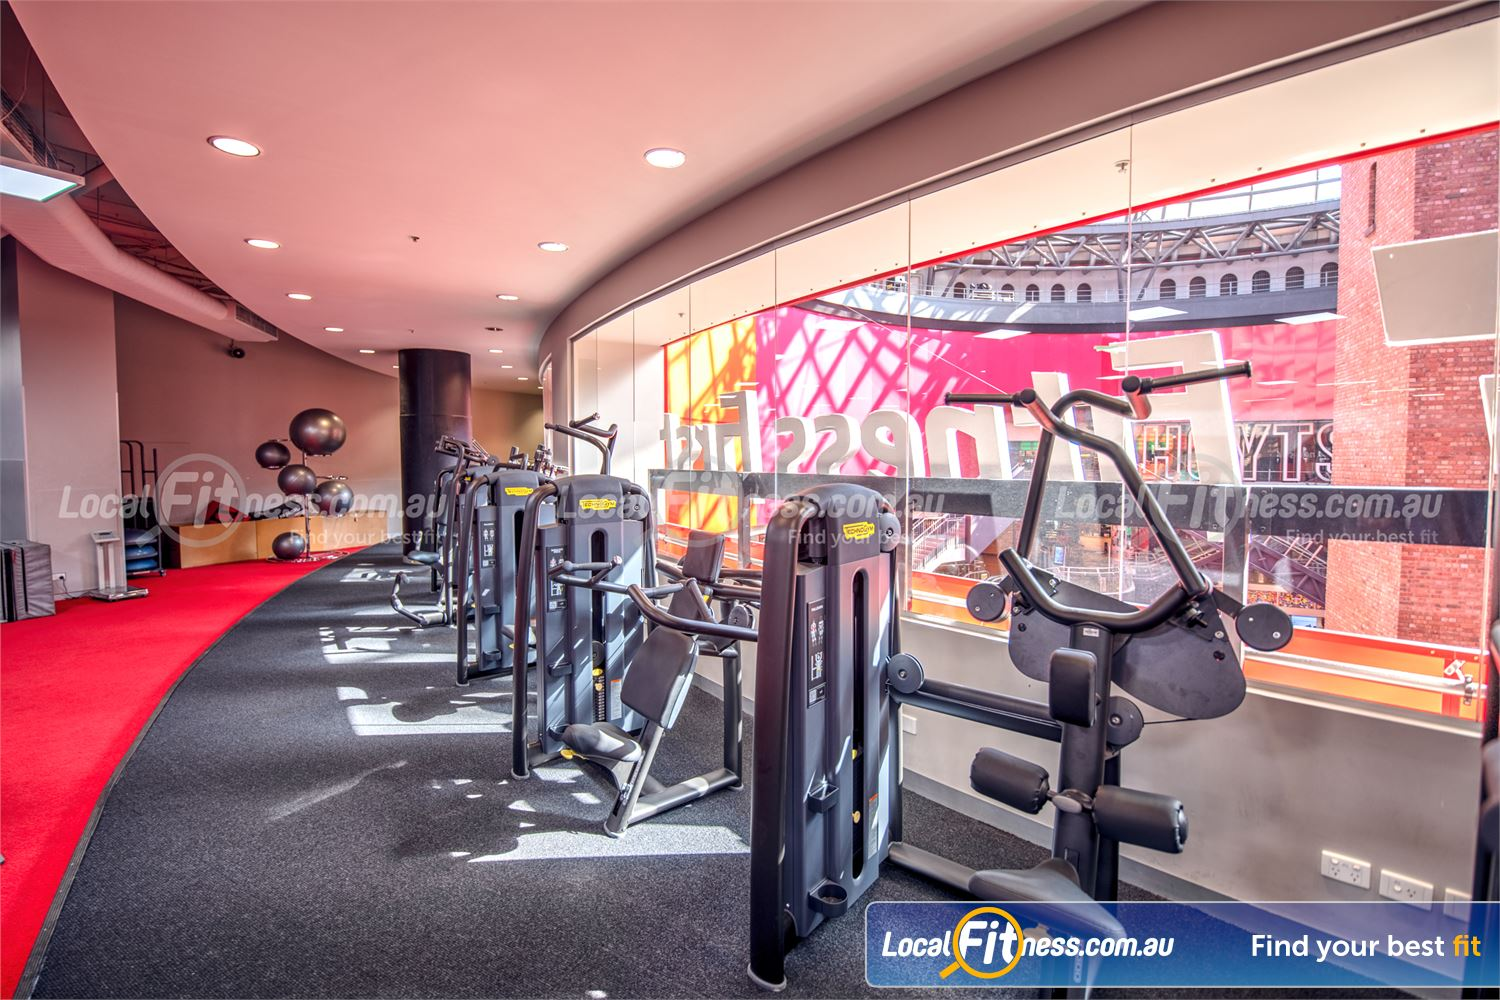 Fitness First Melbourne Central Platinum Melbourne State of the art pin-loading machines from Technogym.